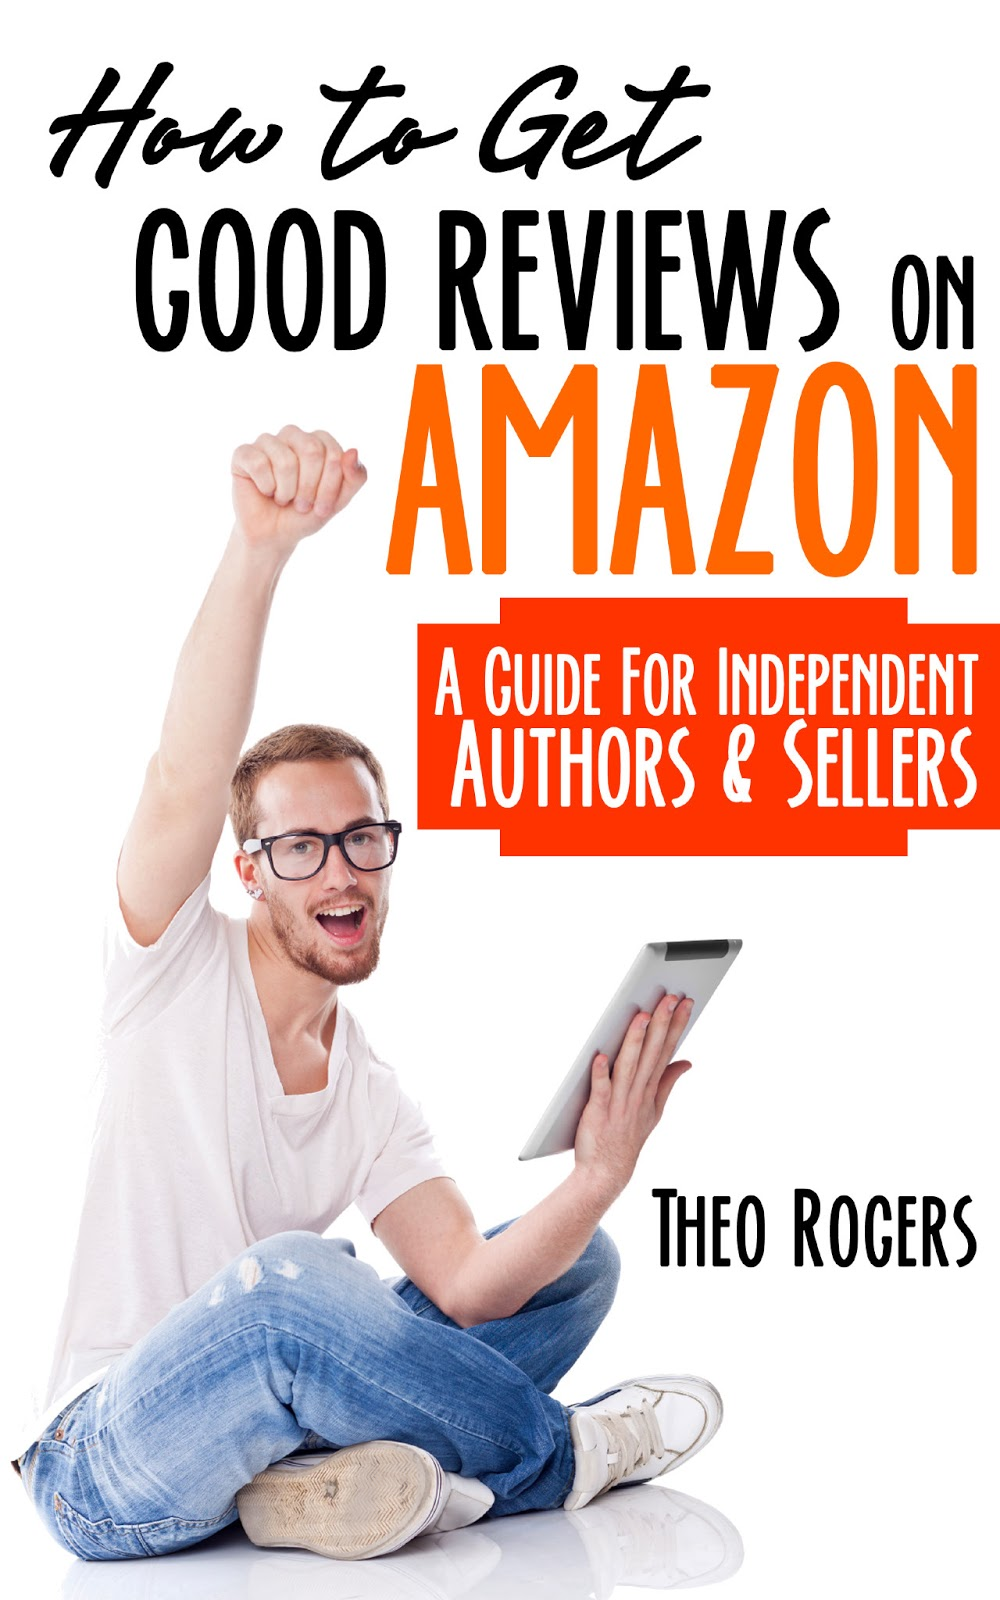 travel the ages how to get good reviews on amazon by theo rogers how to get good reviews on amazon by theo rogers